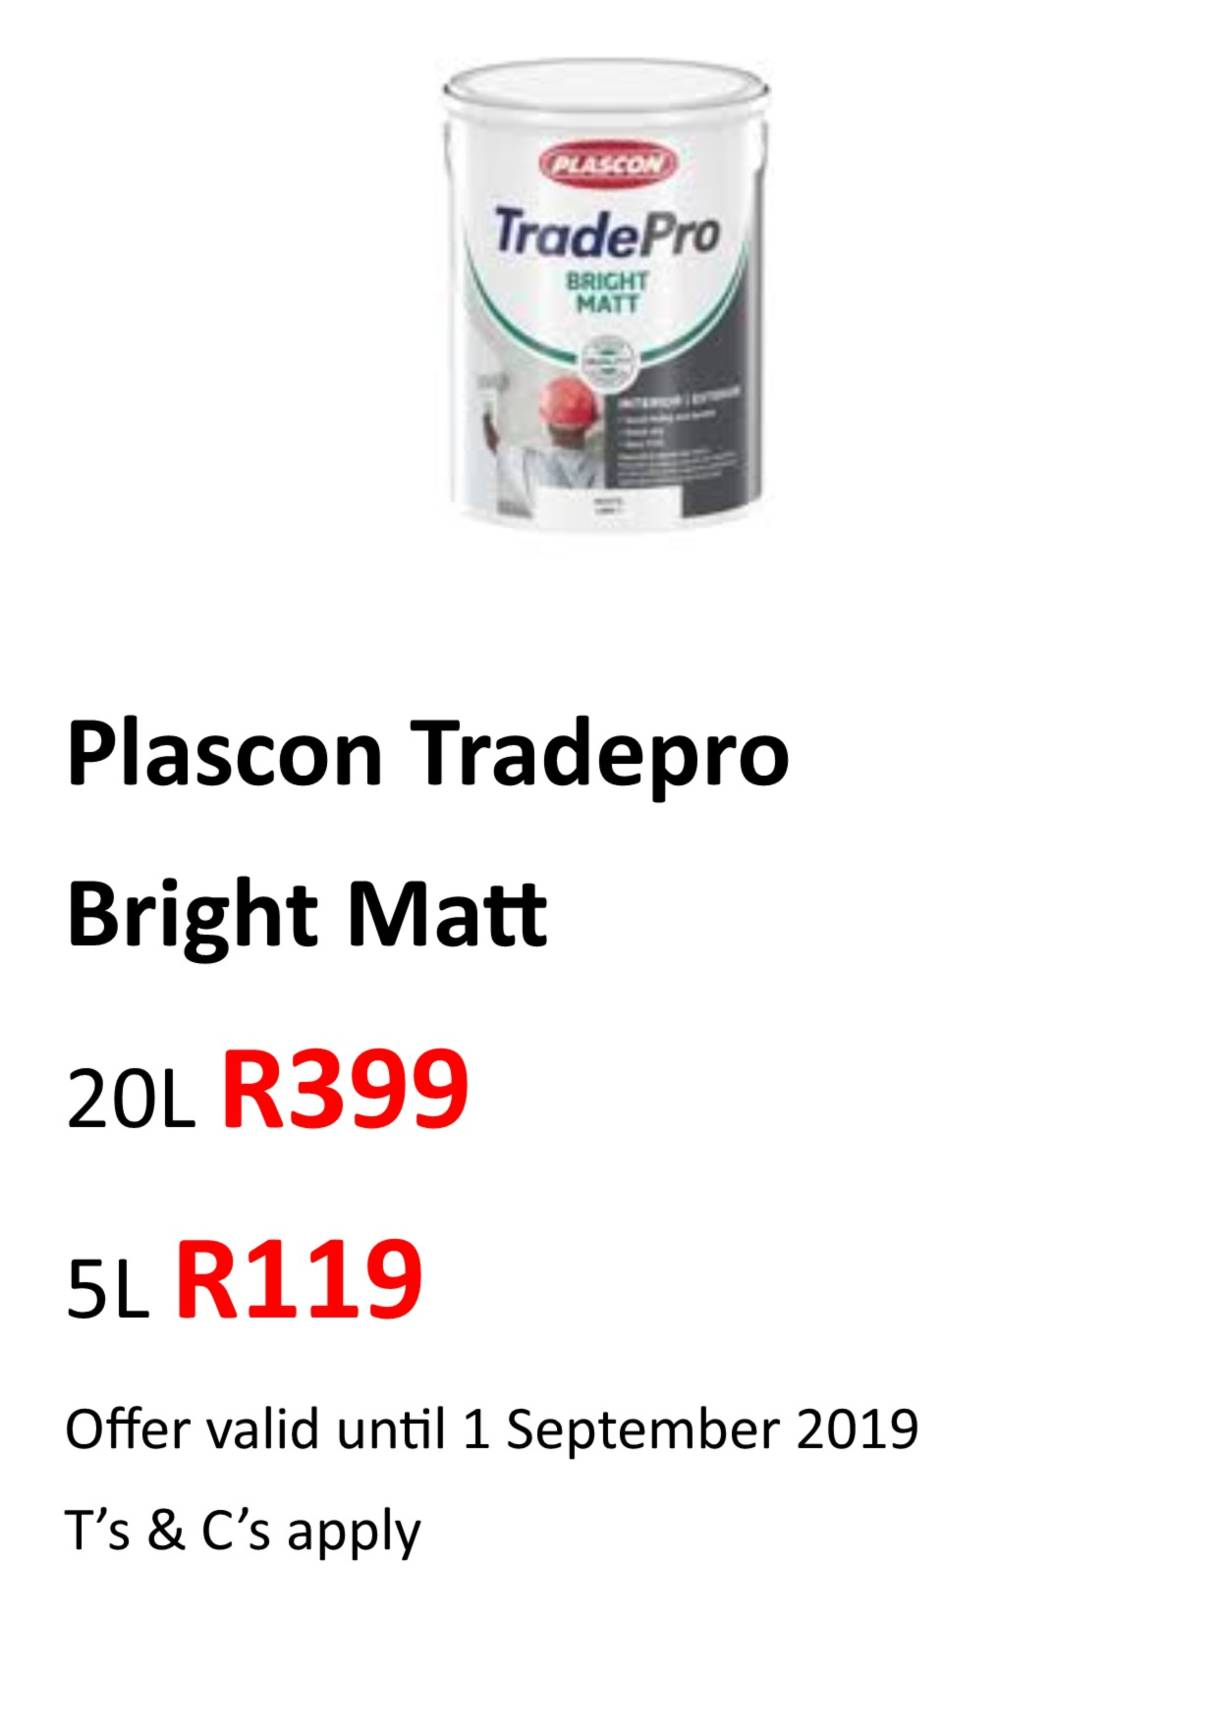 Tradepro Bright Matt Aug 2019